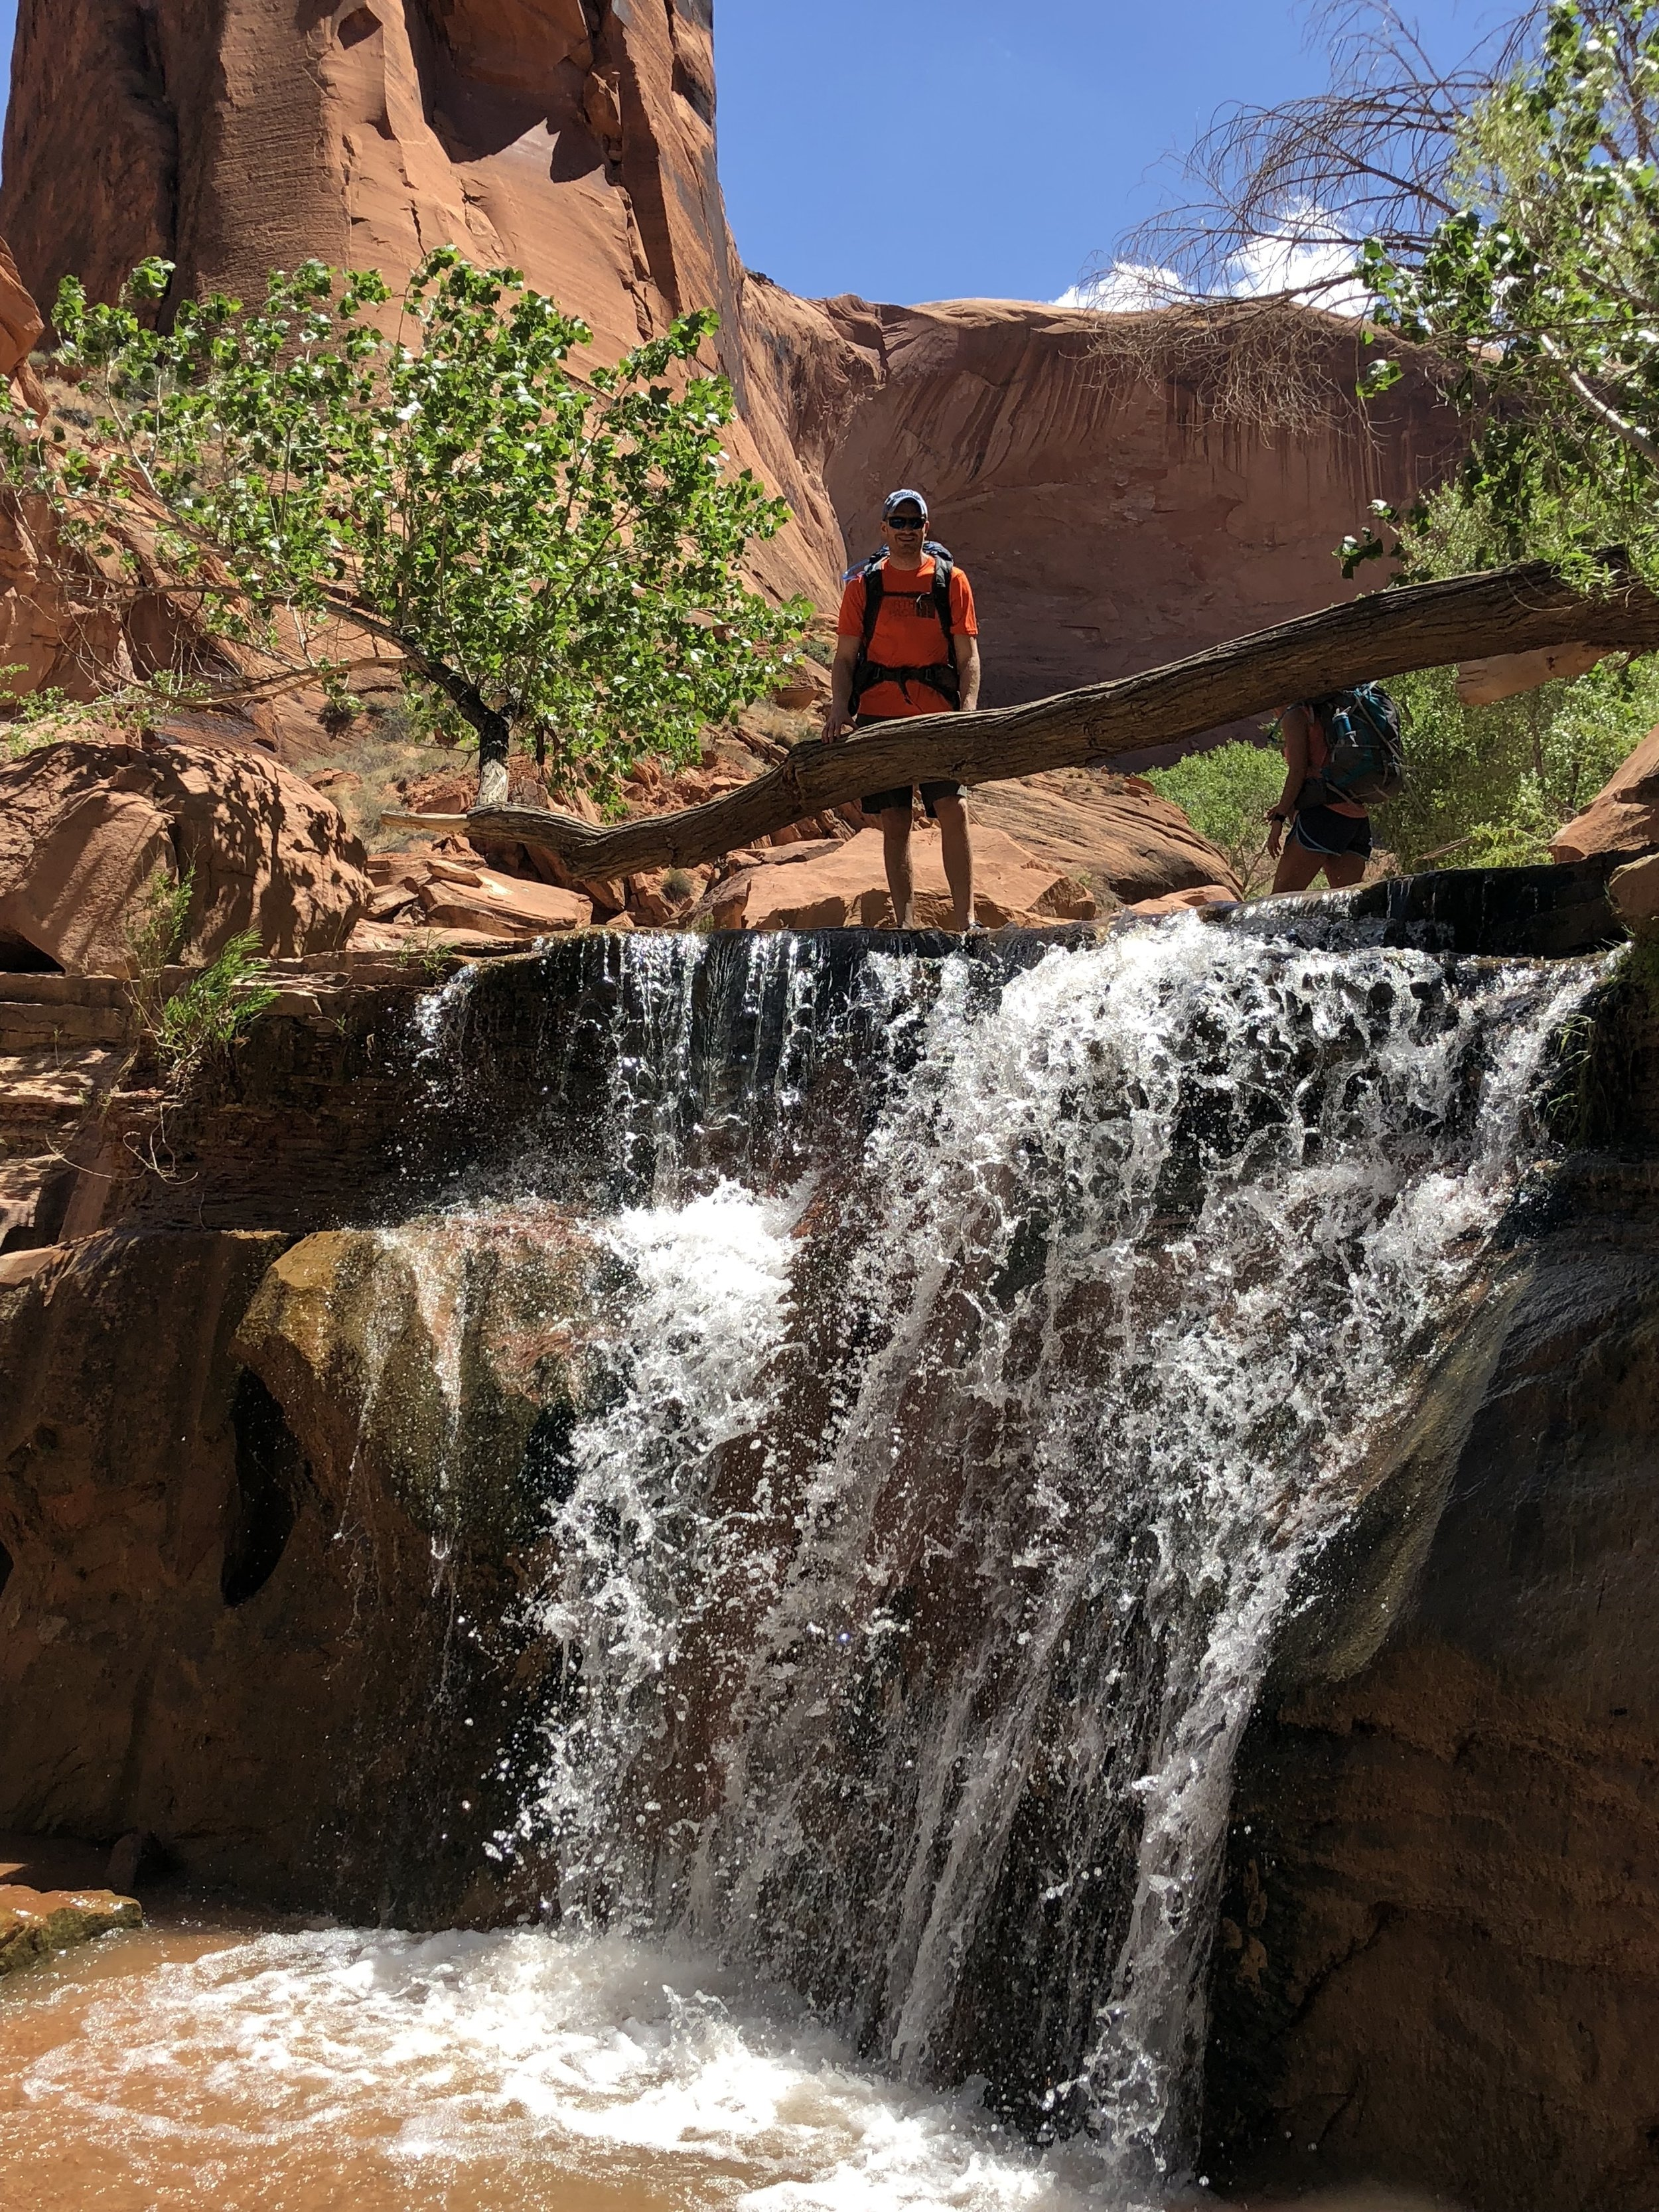 One of the many small waterfalls we encountered with Ben for scale